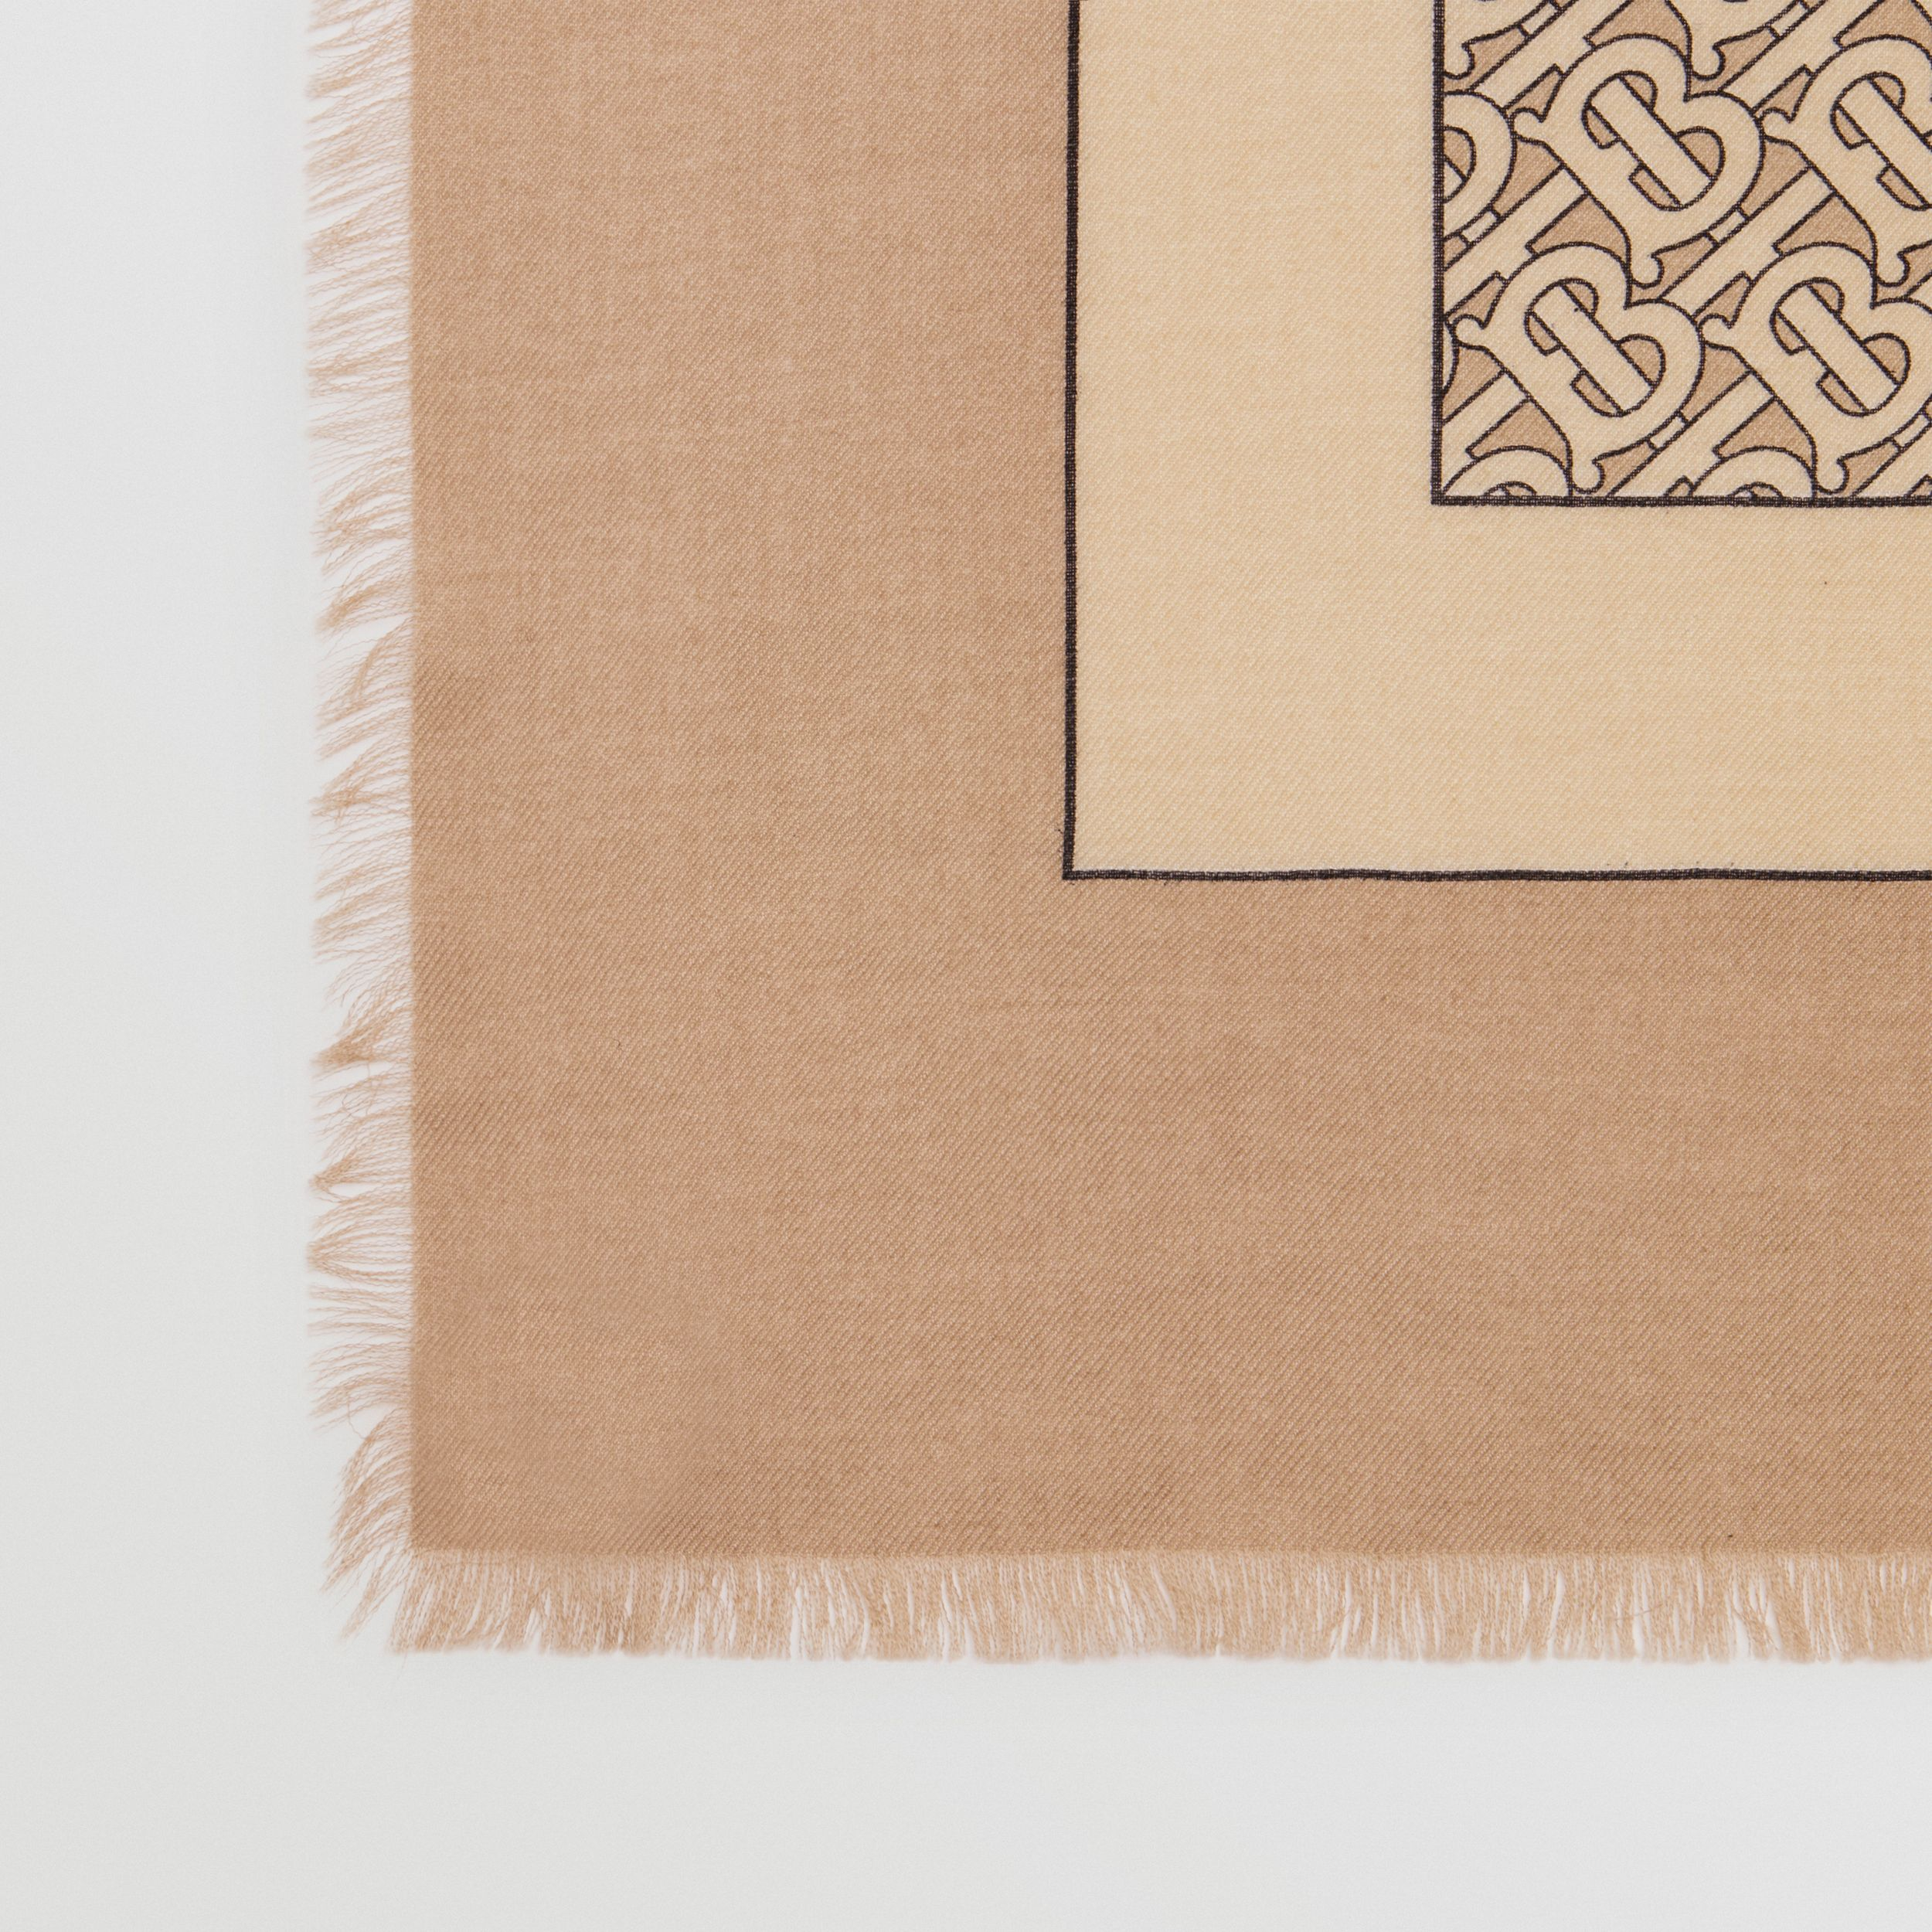 Monogram Print Lightweight Cashmere Scarf in Pale Camel | Burberry - 2